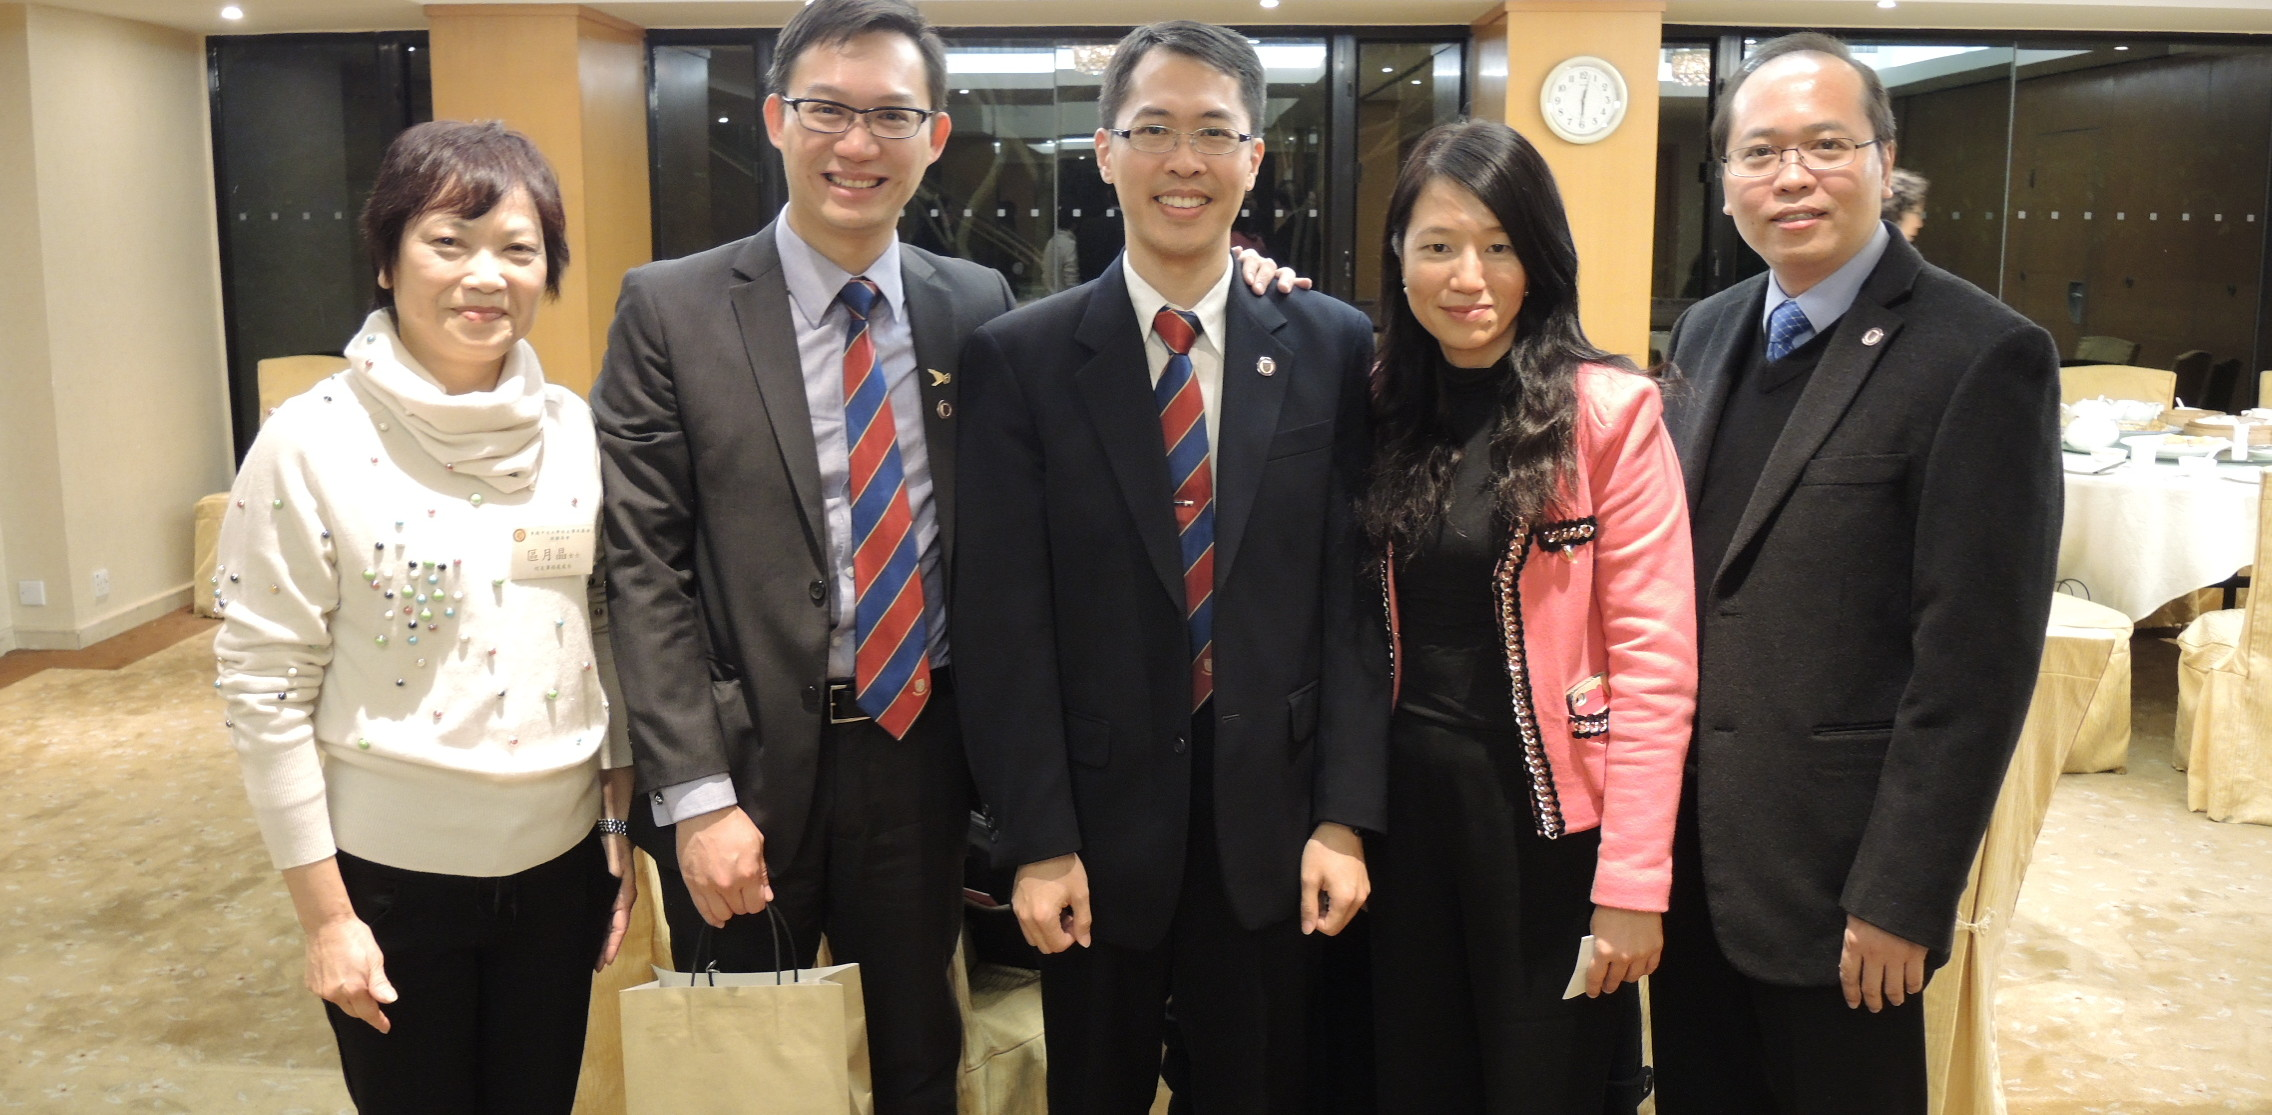 20141205 - CUHK Alumni Torch Fund_02L1